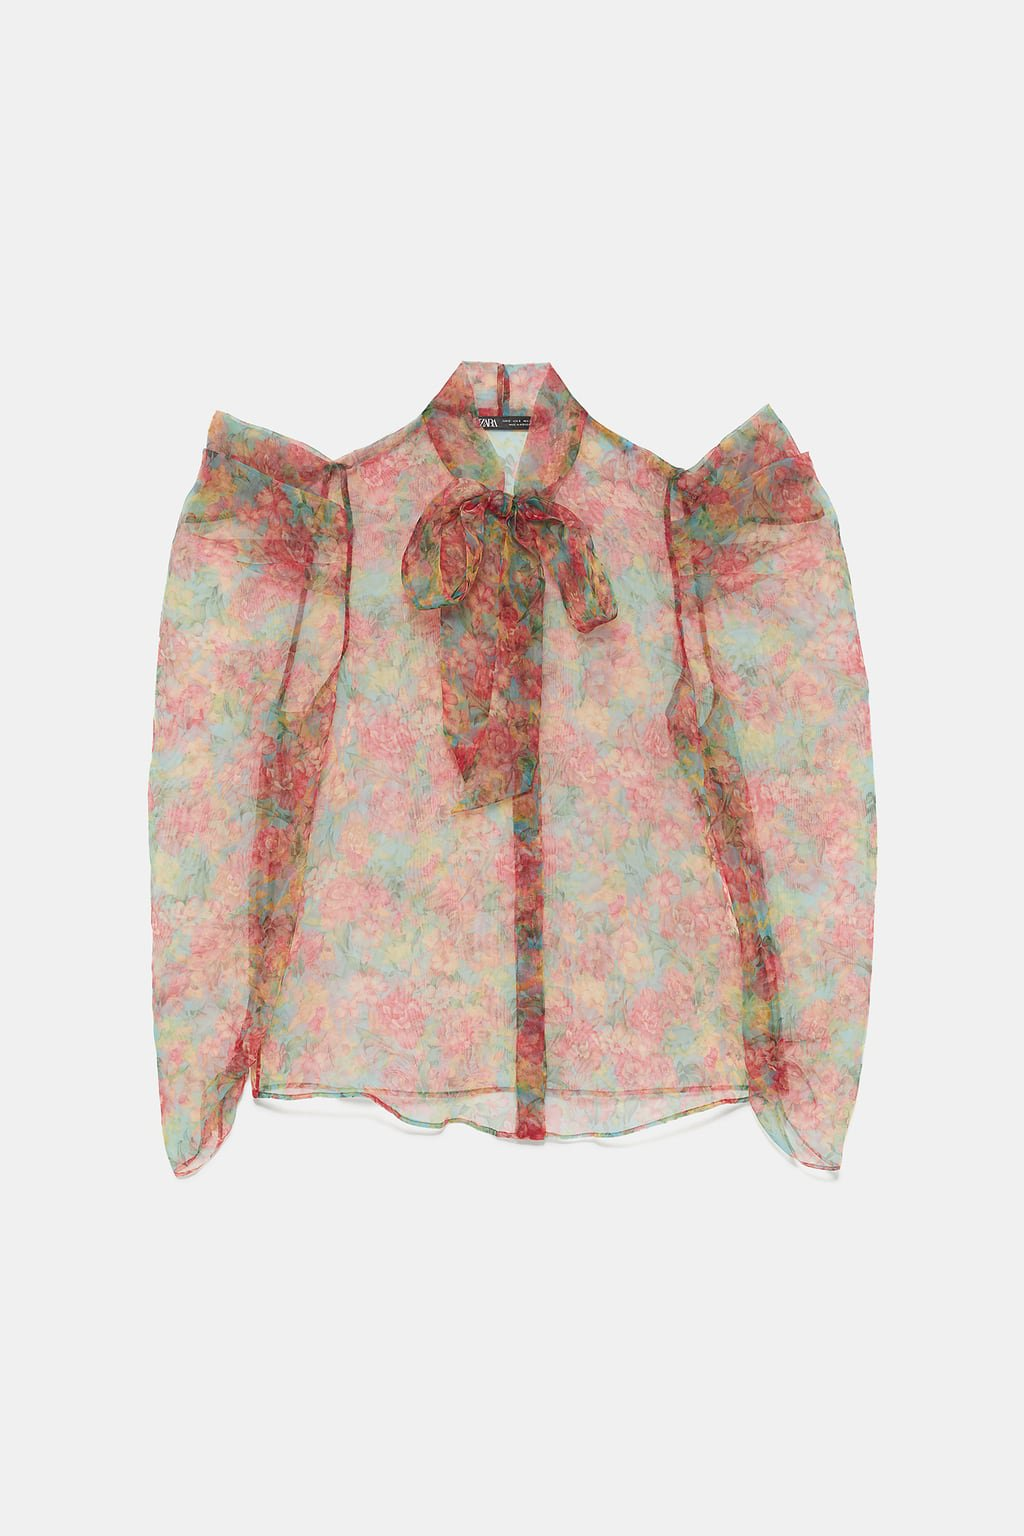 Trend FLORAL PRINT ORGANZA BLOUSE - NEW IN-WOMAN | ZARA New Zealand